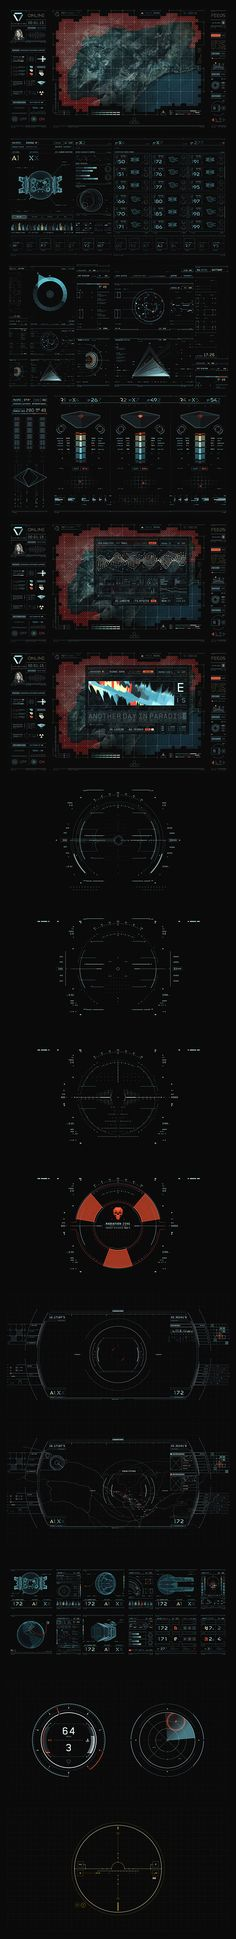 "UI elements from the movie ""Oblivion."""